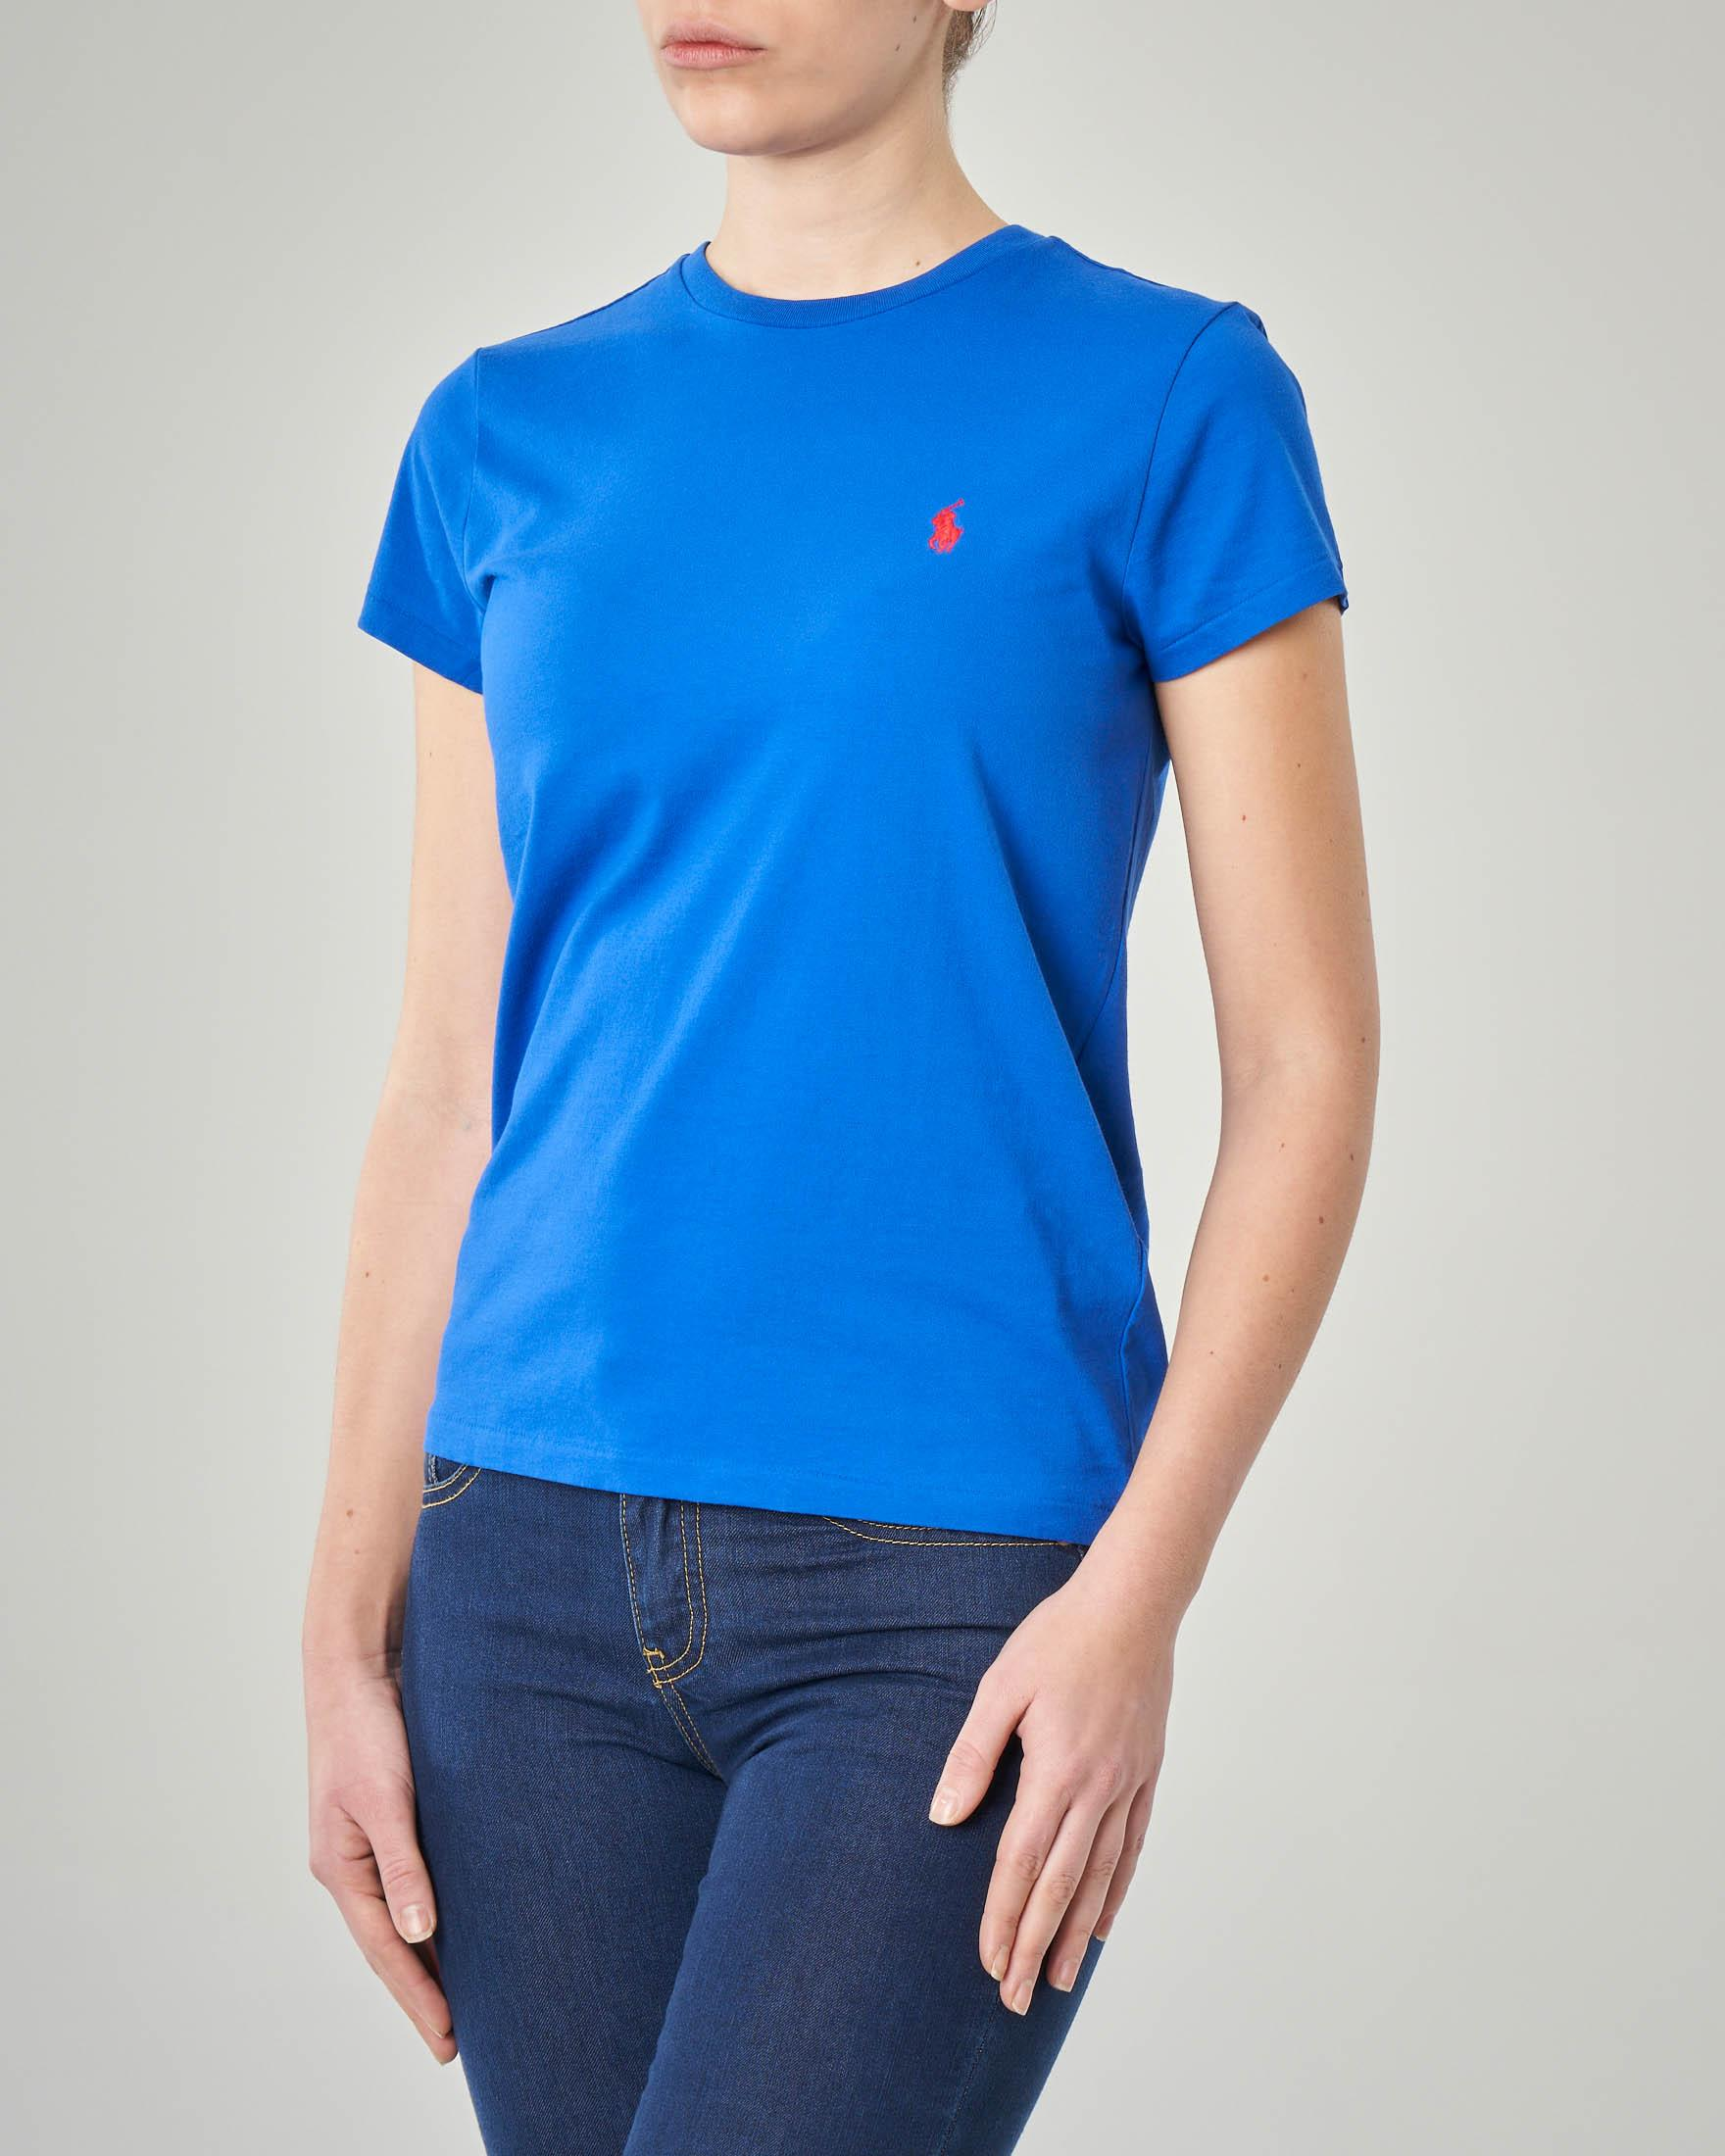 T-shirt blu royal manica corta